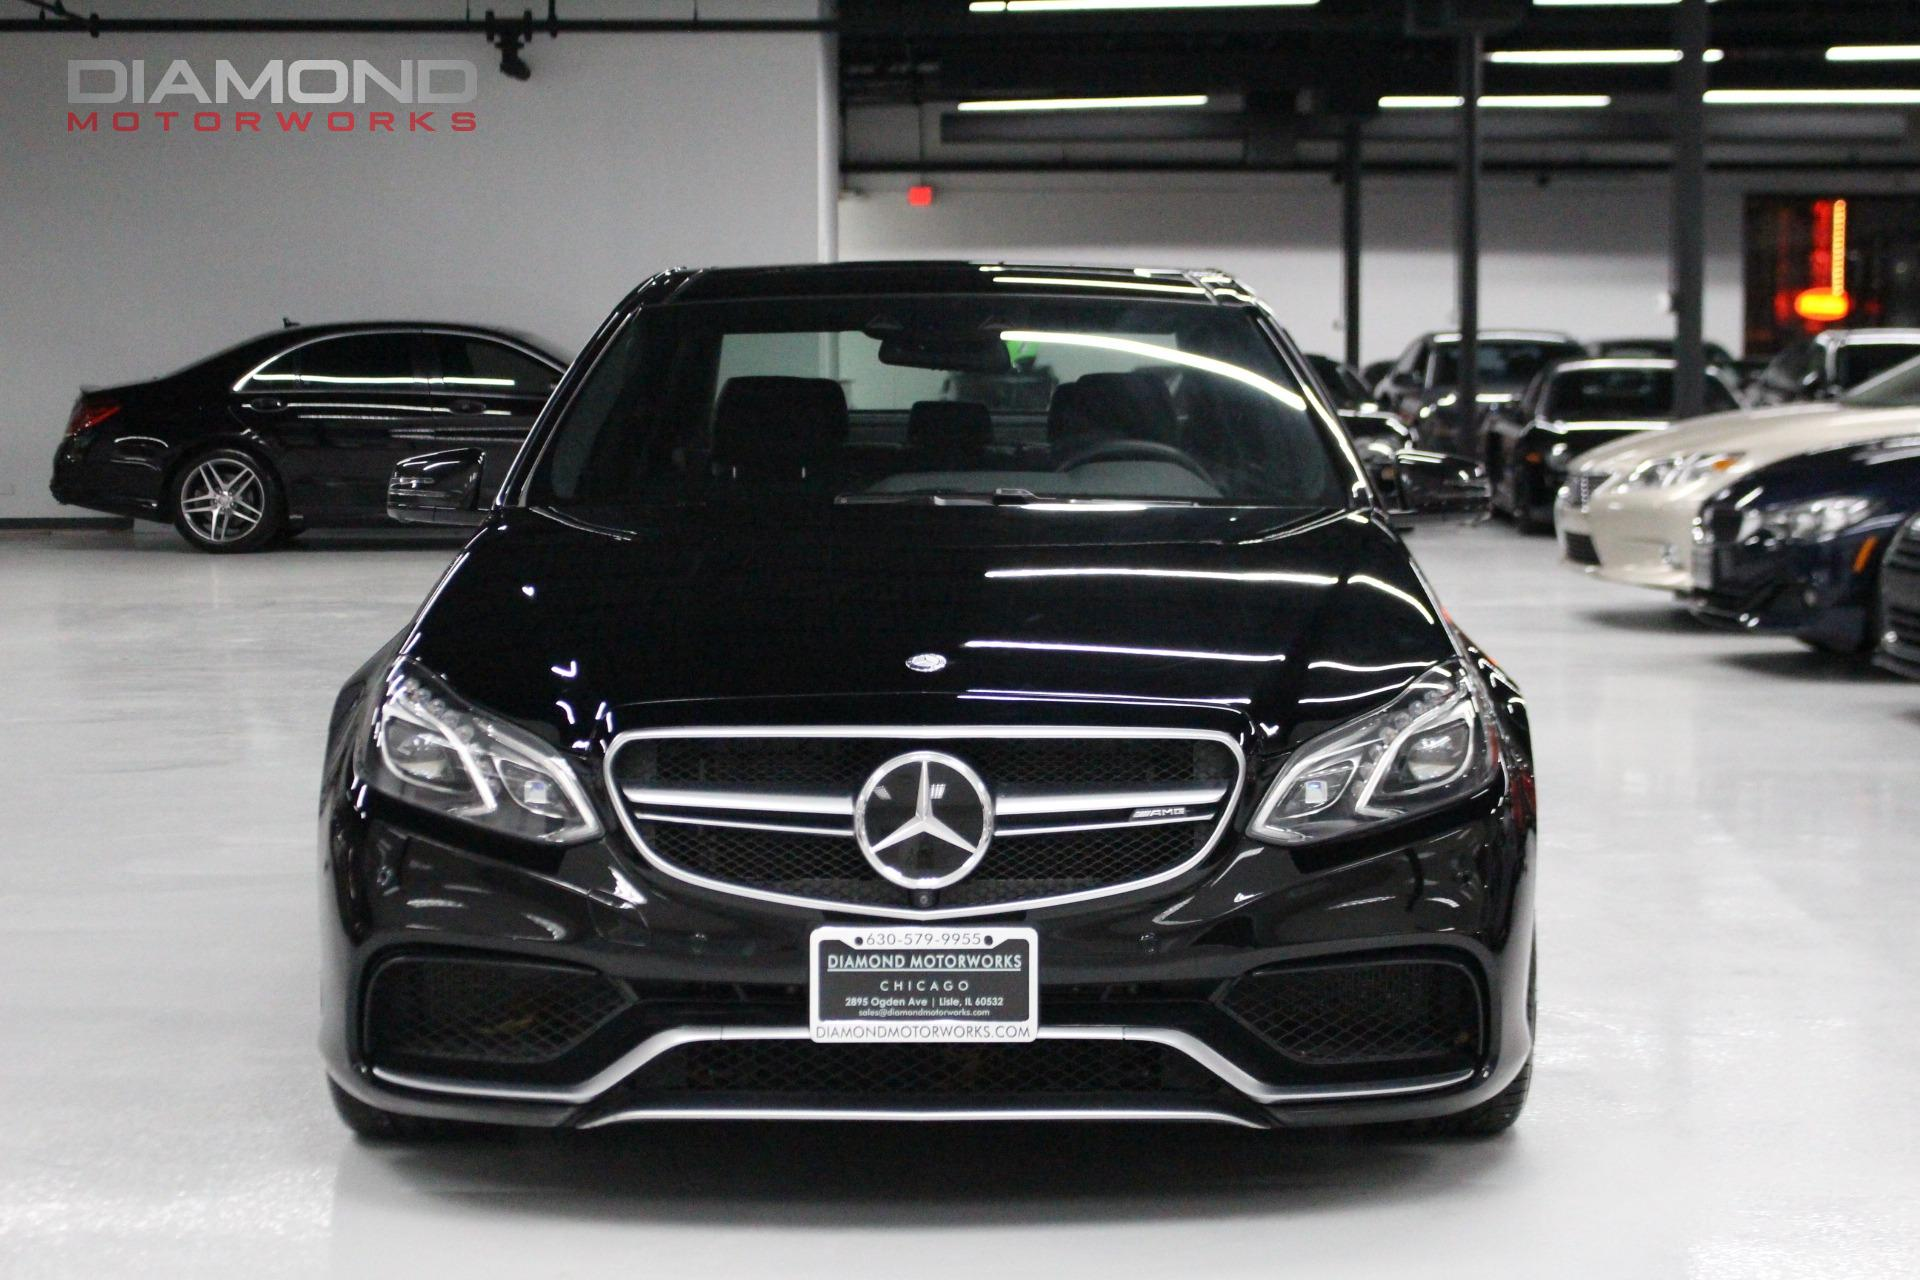 2016 Mercedes Benz Amg E 63 Sedan >> E 63 Amg 2018 Mercedes Amg E63 E63 S Get Up To 603hp Hit